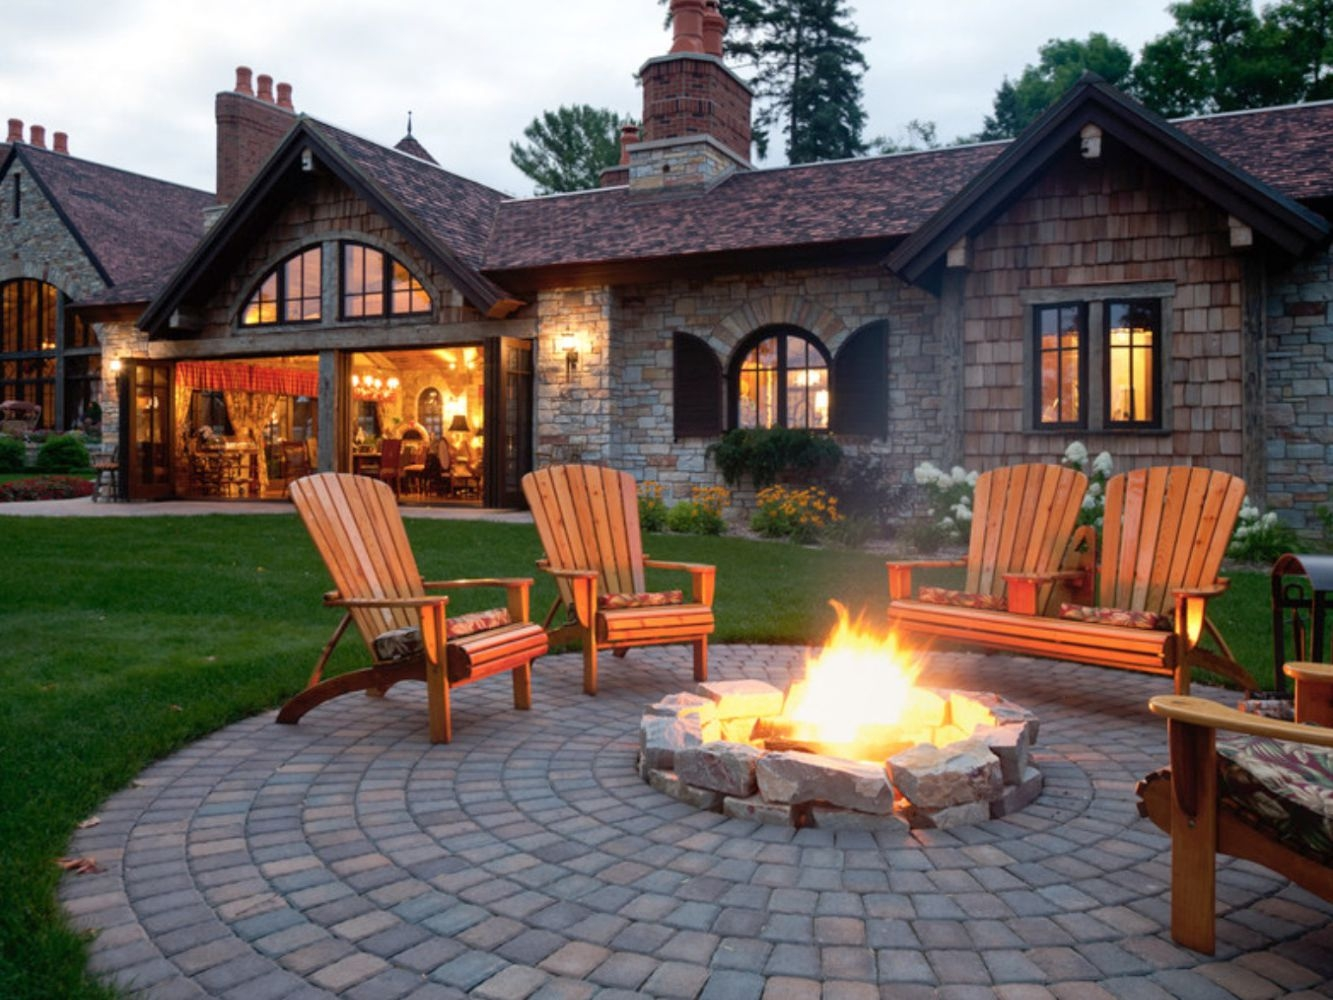 25 Great Patio Paver Design Ideas   Patio With Stairs From House   Concrete Slab   Simple   Back Yard   Composite Decking   Main Entrance Stamped Concrete Front